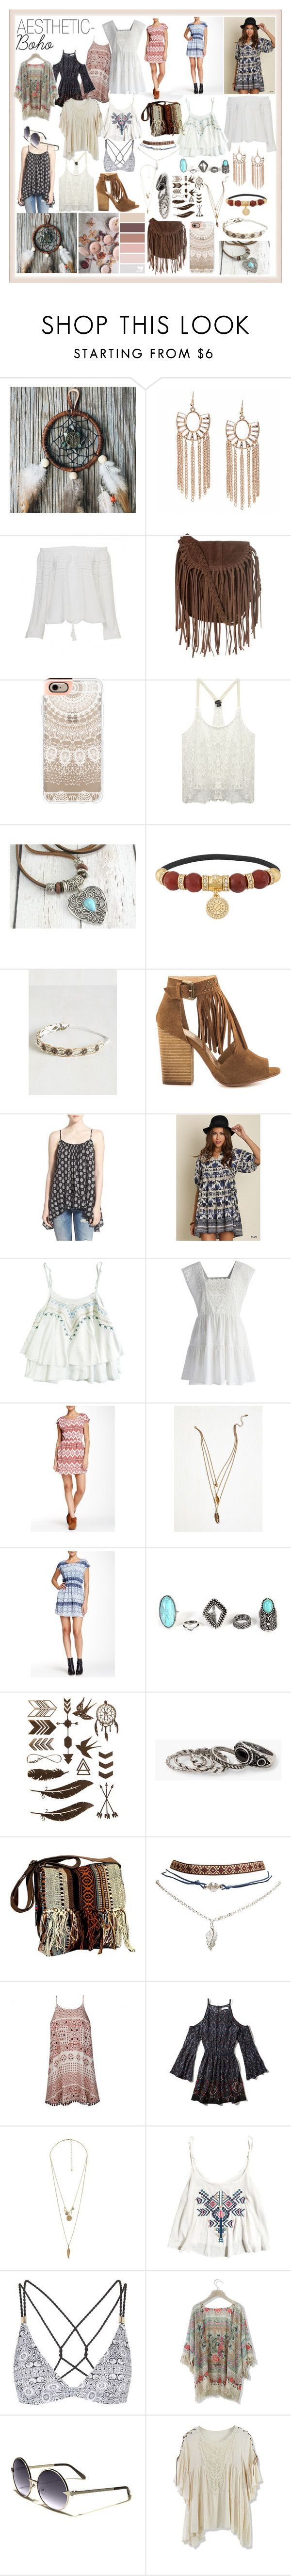 AESTHETIC - Boho by sophsophcherry on Polyvore featuring Pink Rose, Umgee, Abercrombie & Fitch, Ally Fashion, Sun & Shadow, Chicwish, Wet Seal, Topshop, Chinese Laundry and Glamorous